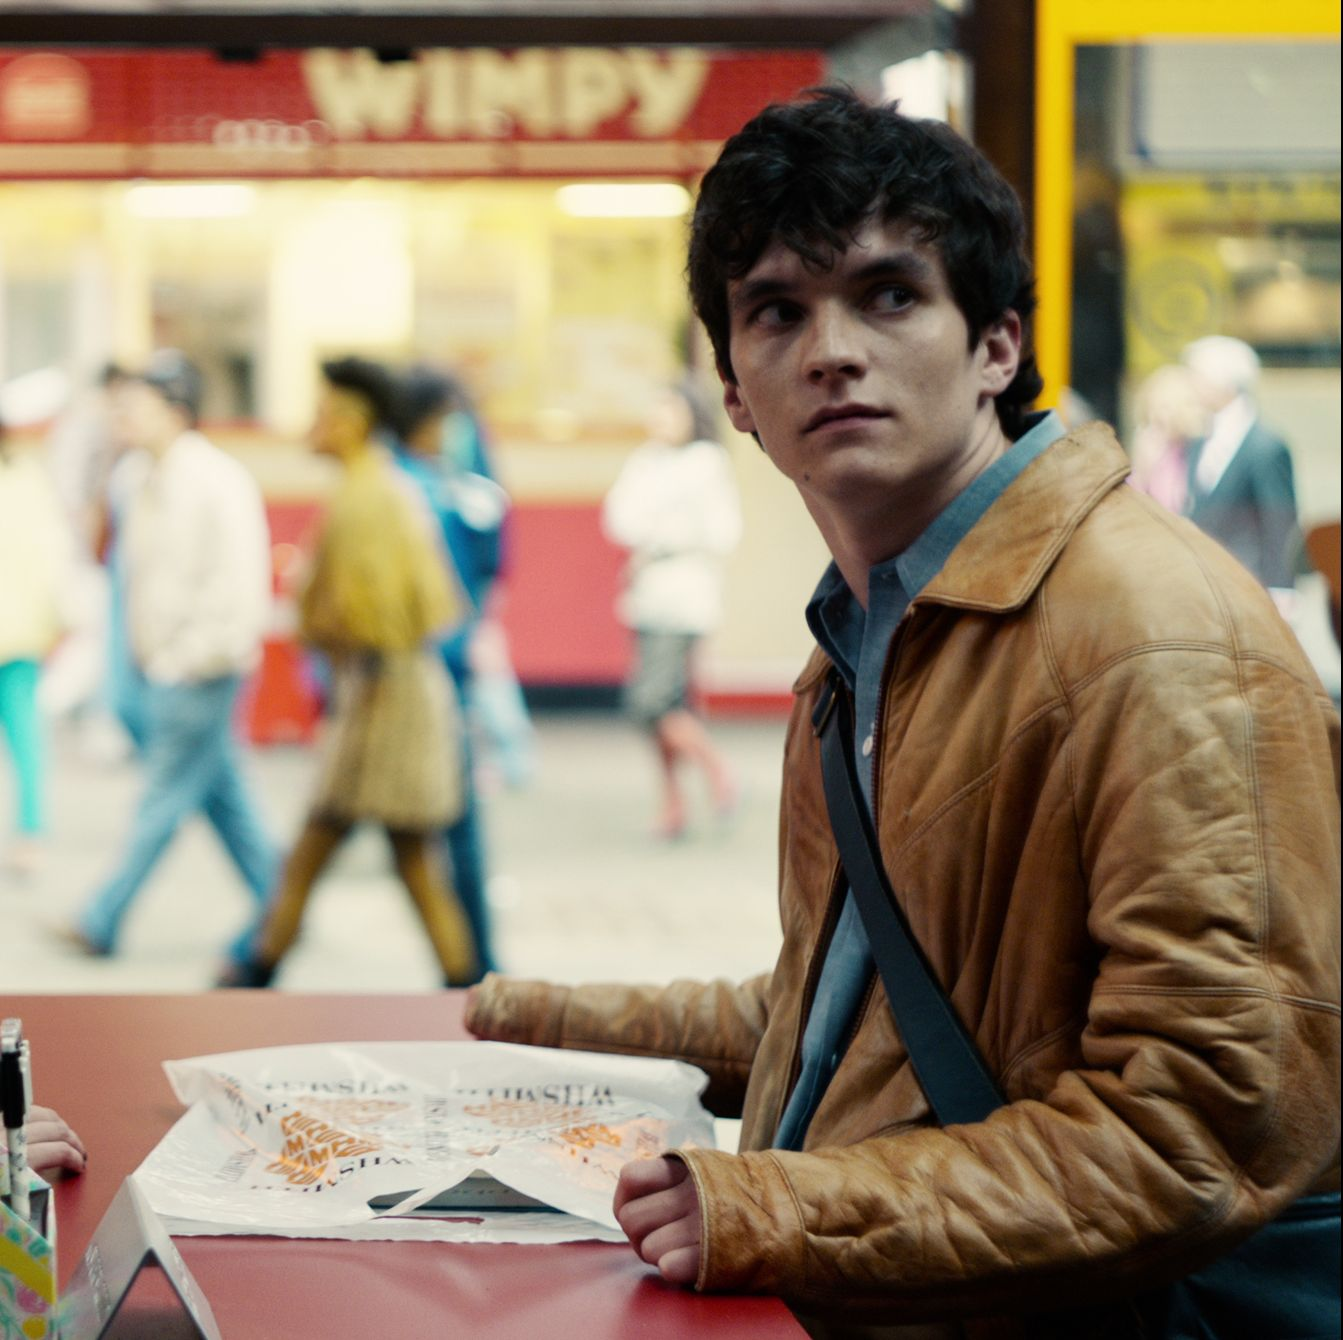 Netflix Recorded All The Answers You Gave In Bandersnatch